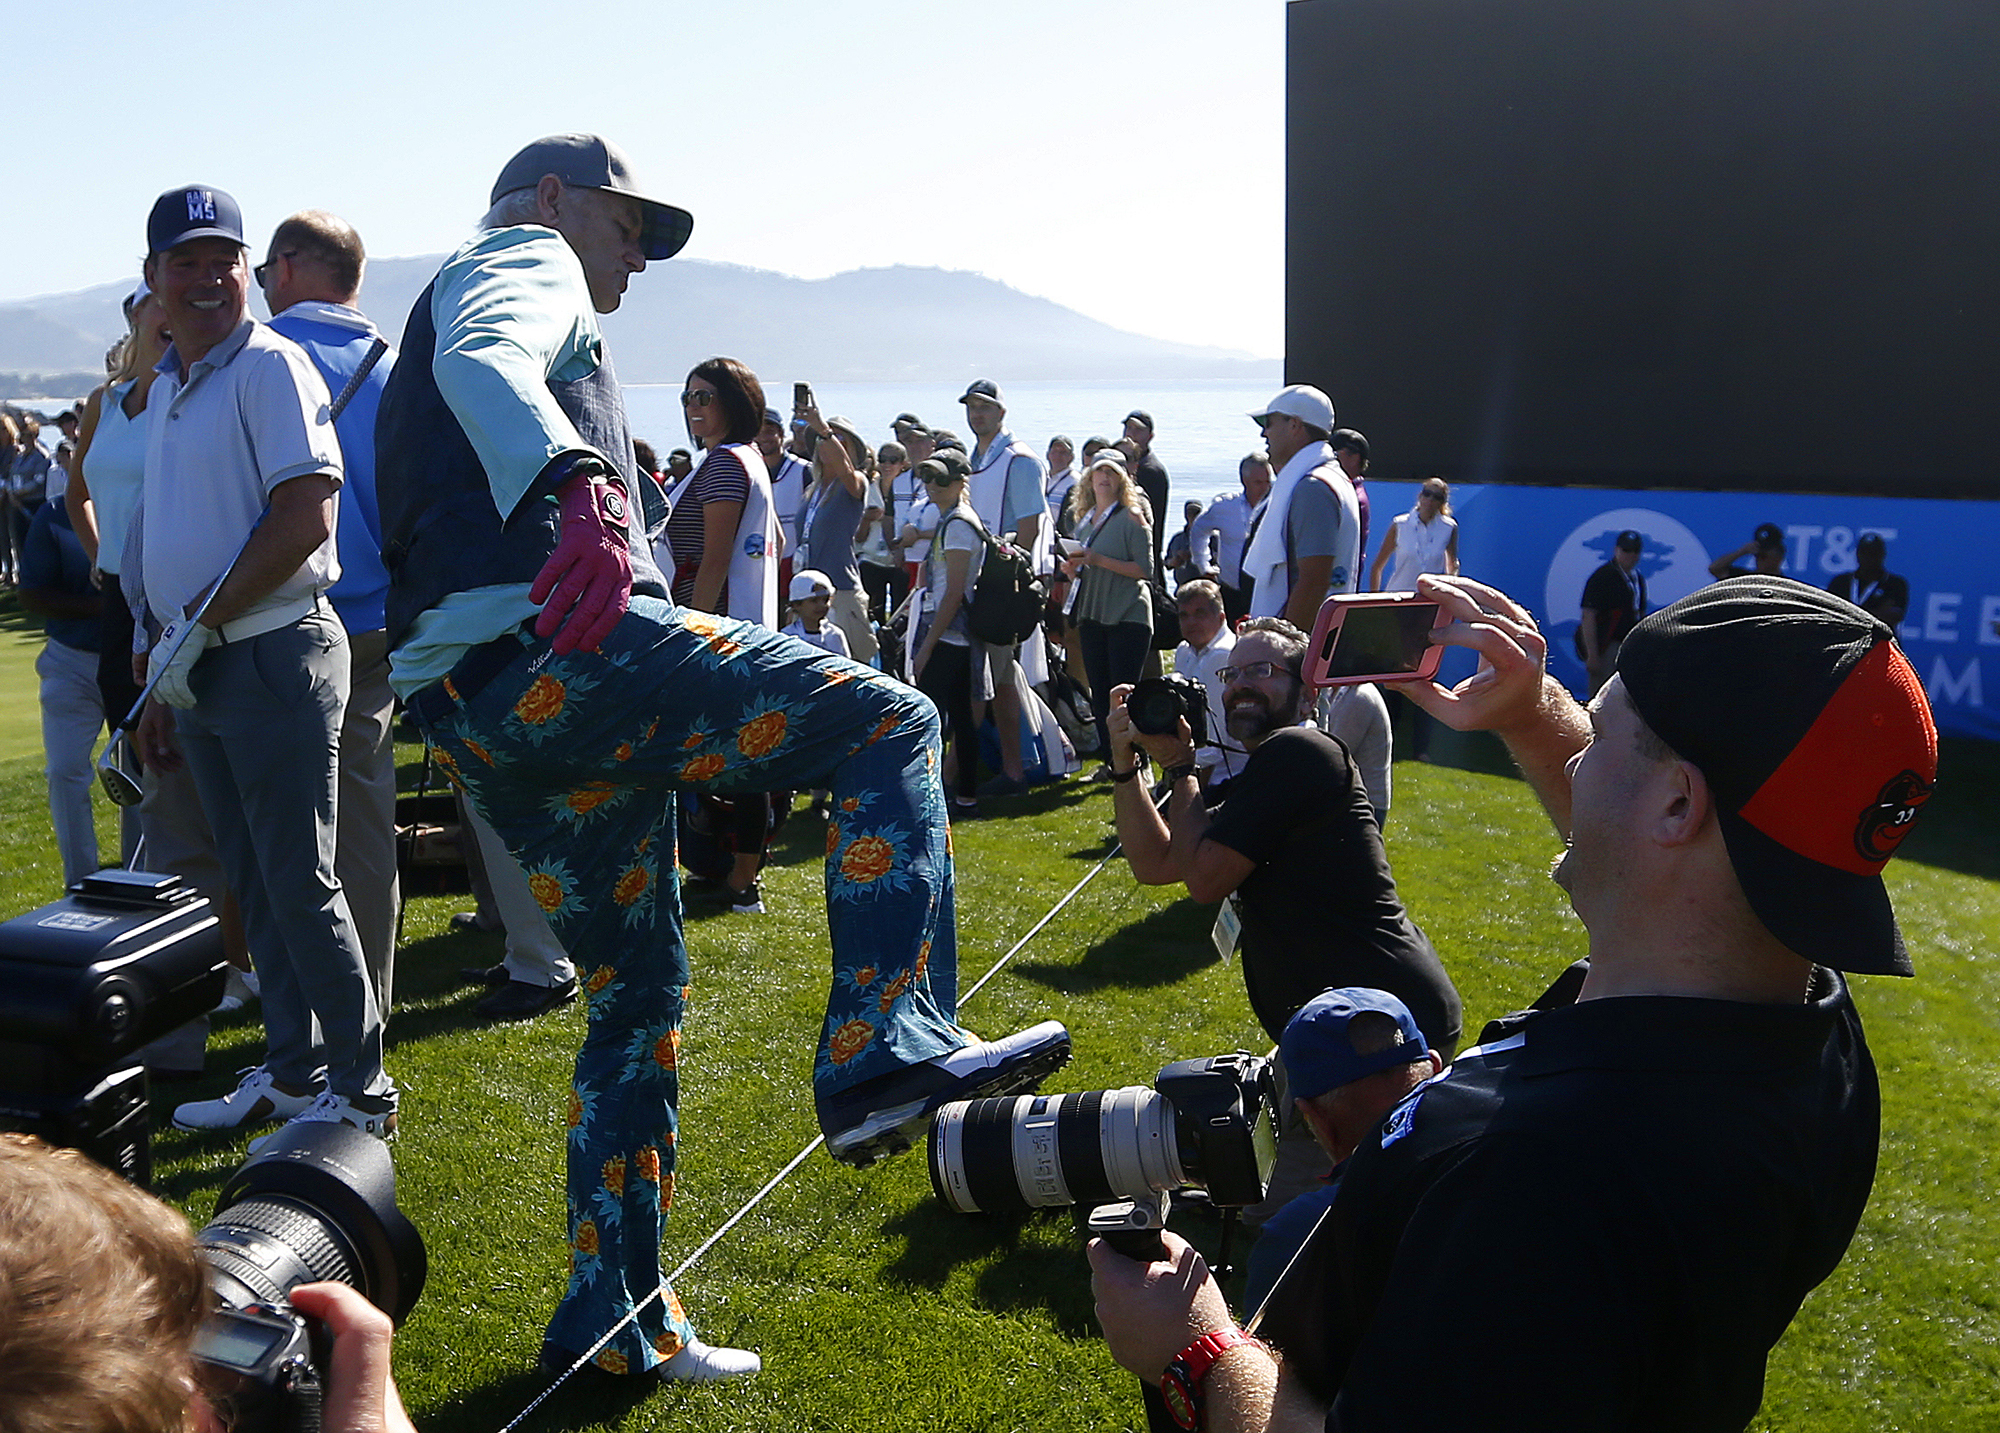 McIlroy's outlook on golf matches climate at Pebble